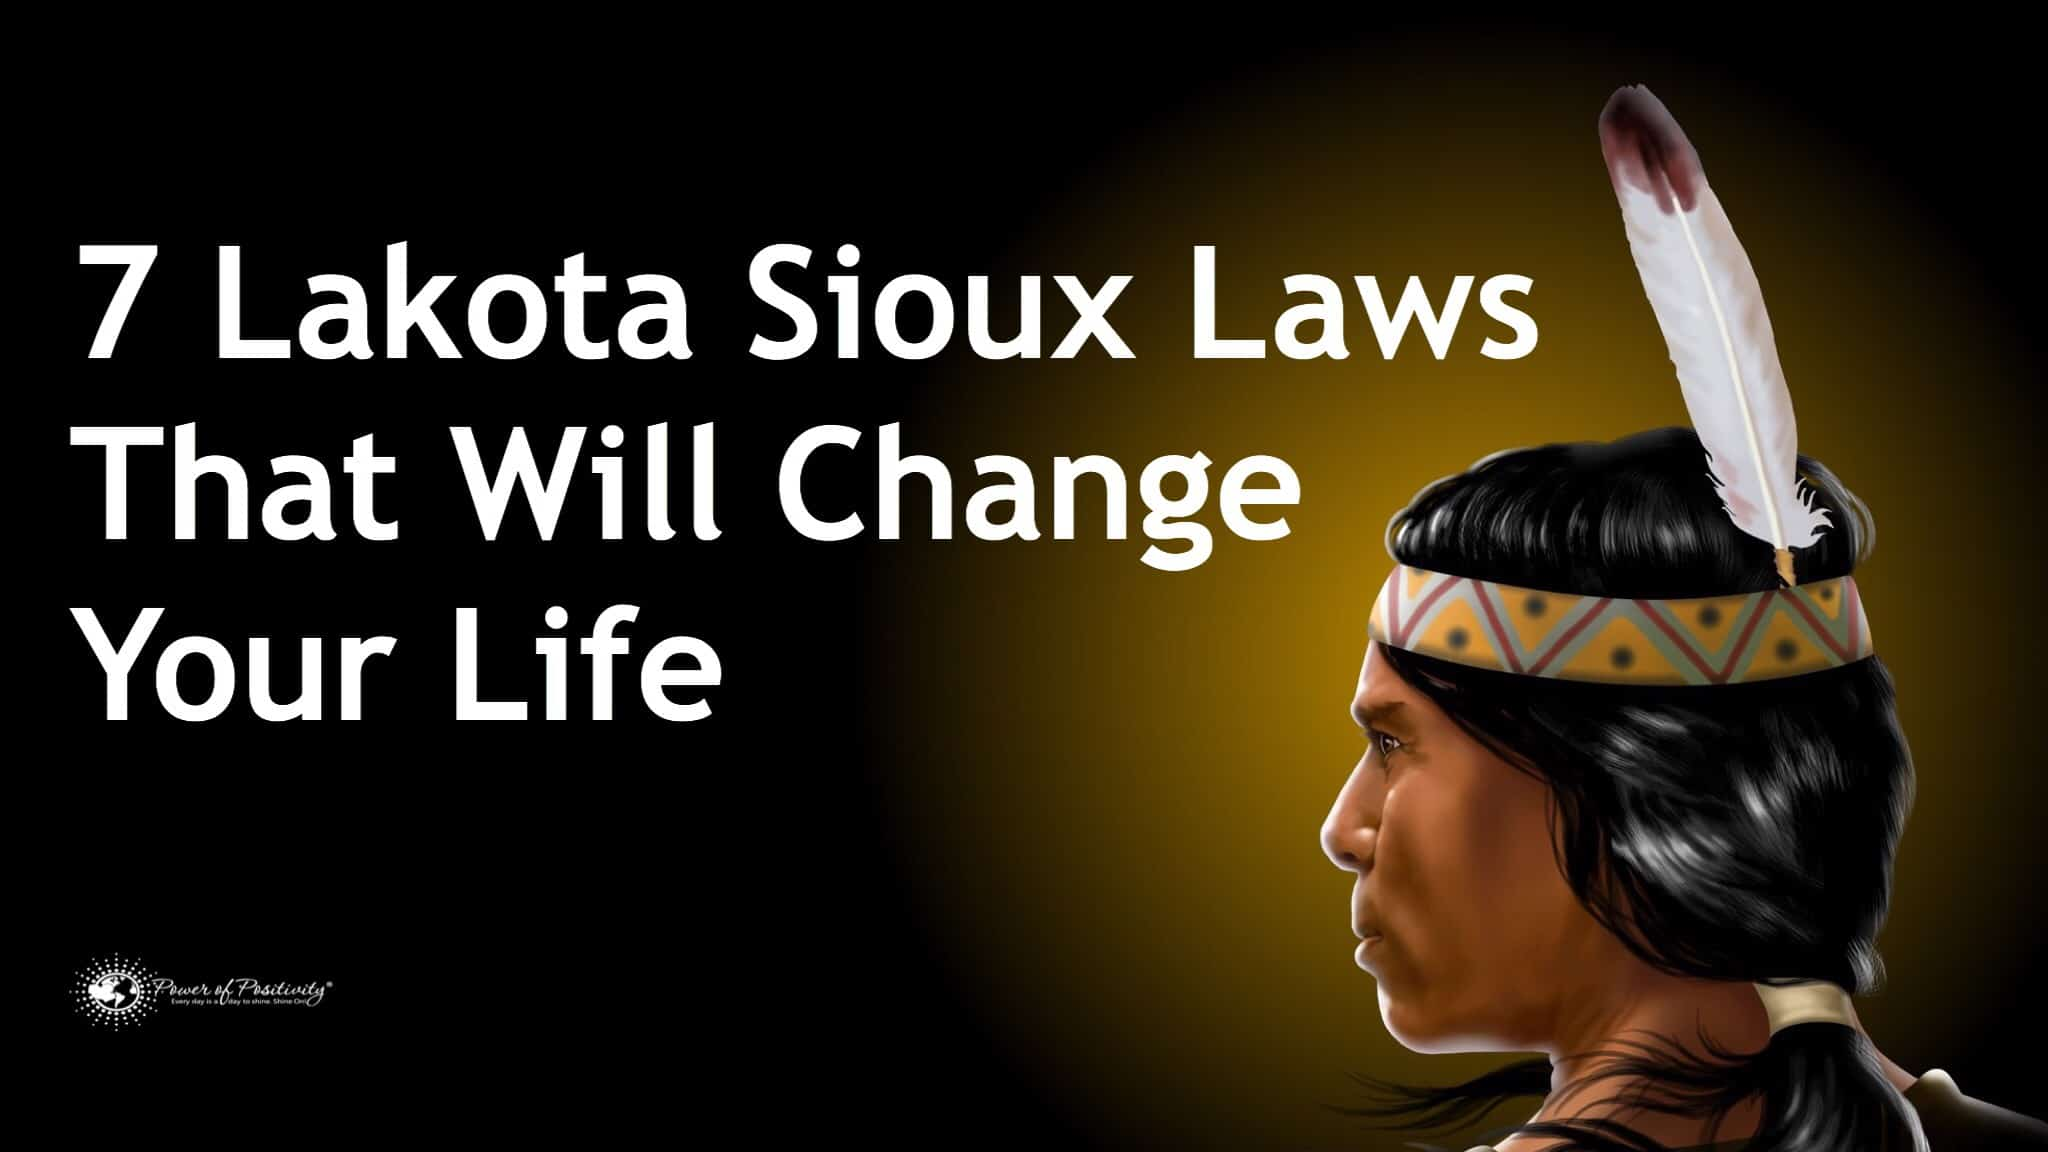 sioux laws